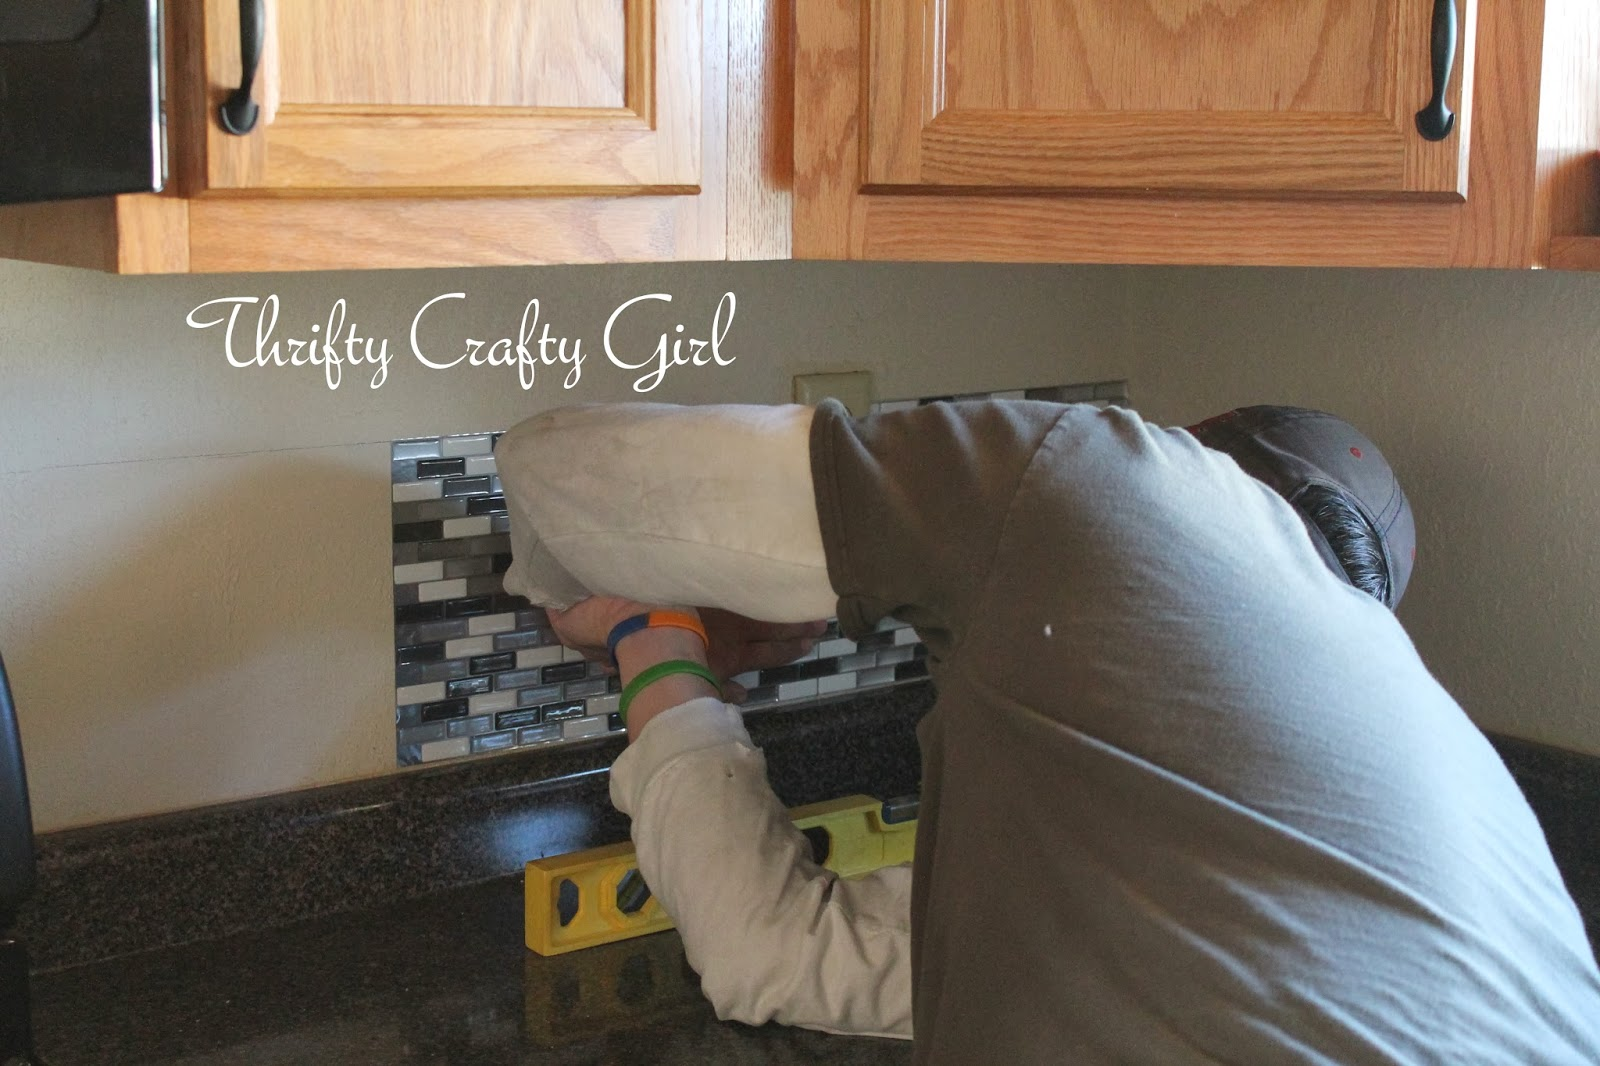 Thrifty crafty girl easy kitchen backsplash with smart tiles easy kitchen backsplash with smart tiles dailygadgetfo Images